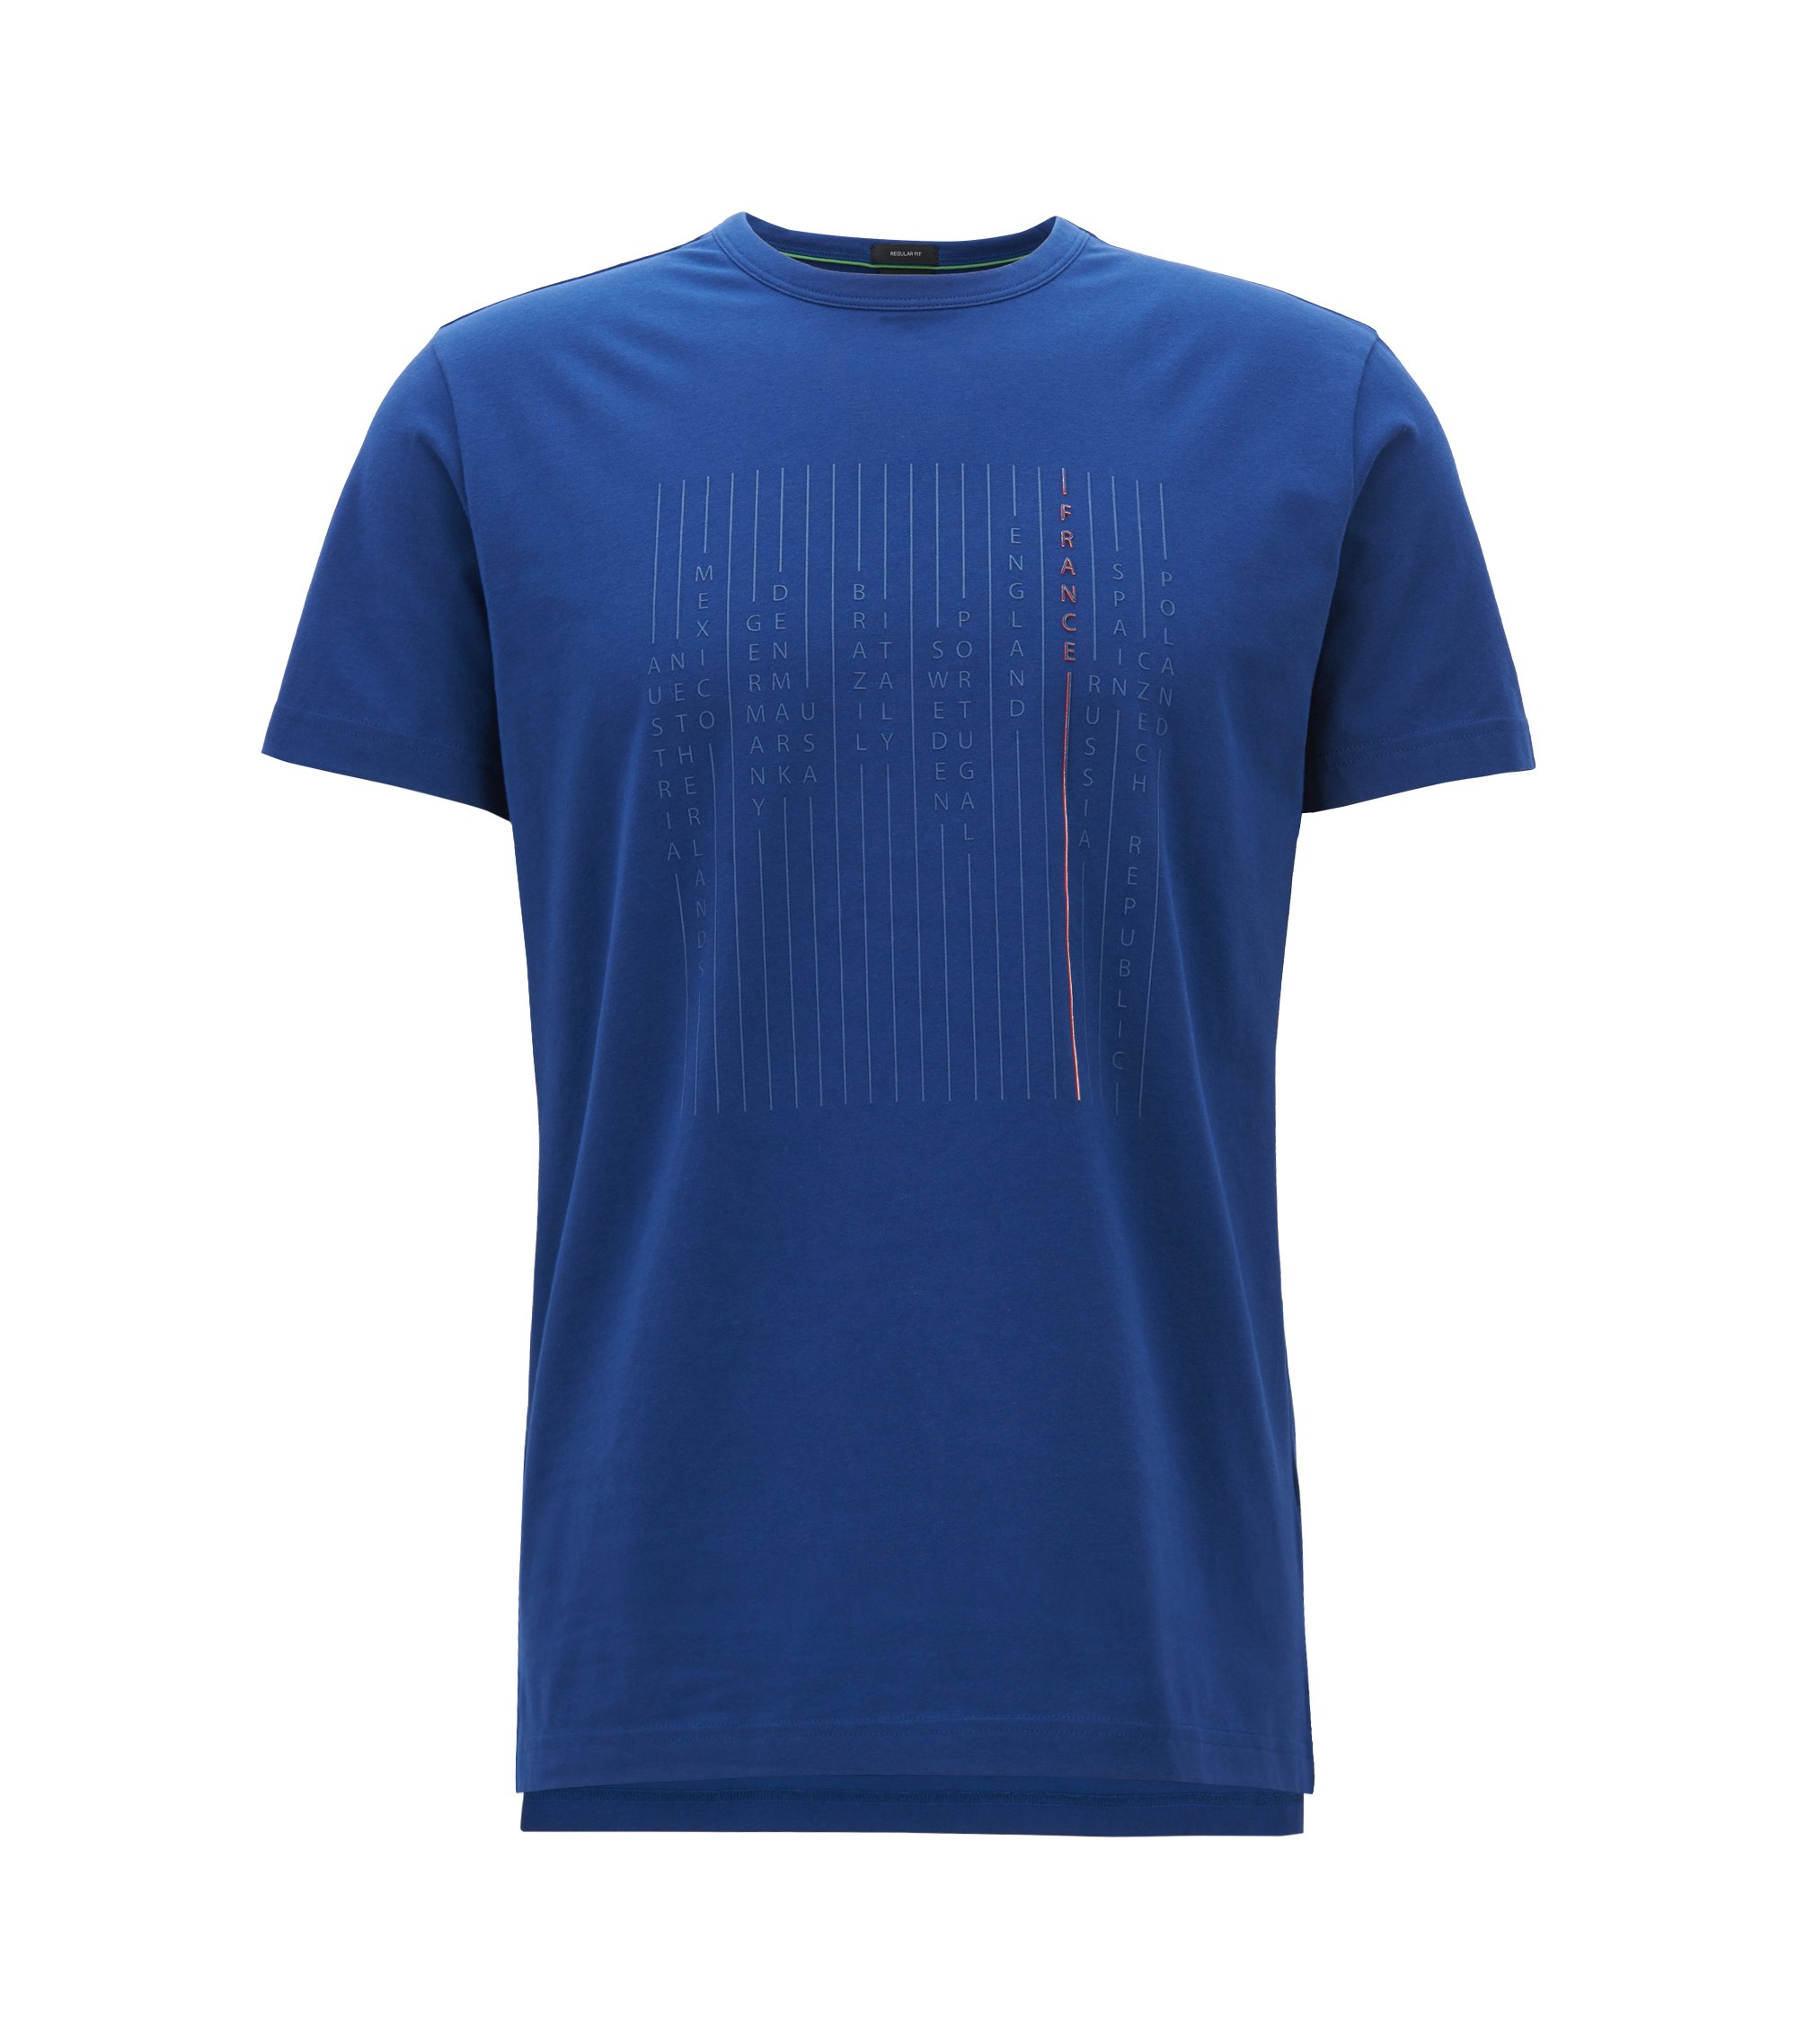 T-Shirt aus Stretch-Baumwolle mit Nationalteam-Print, Blau